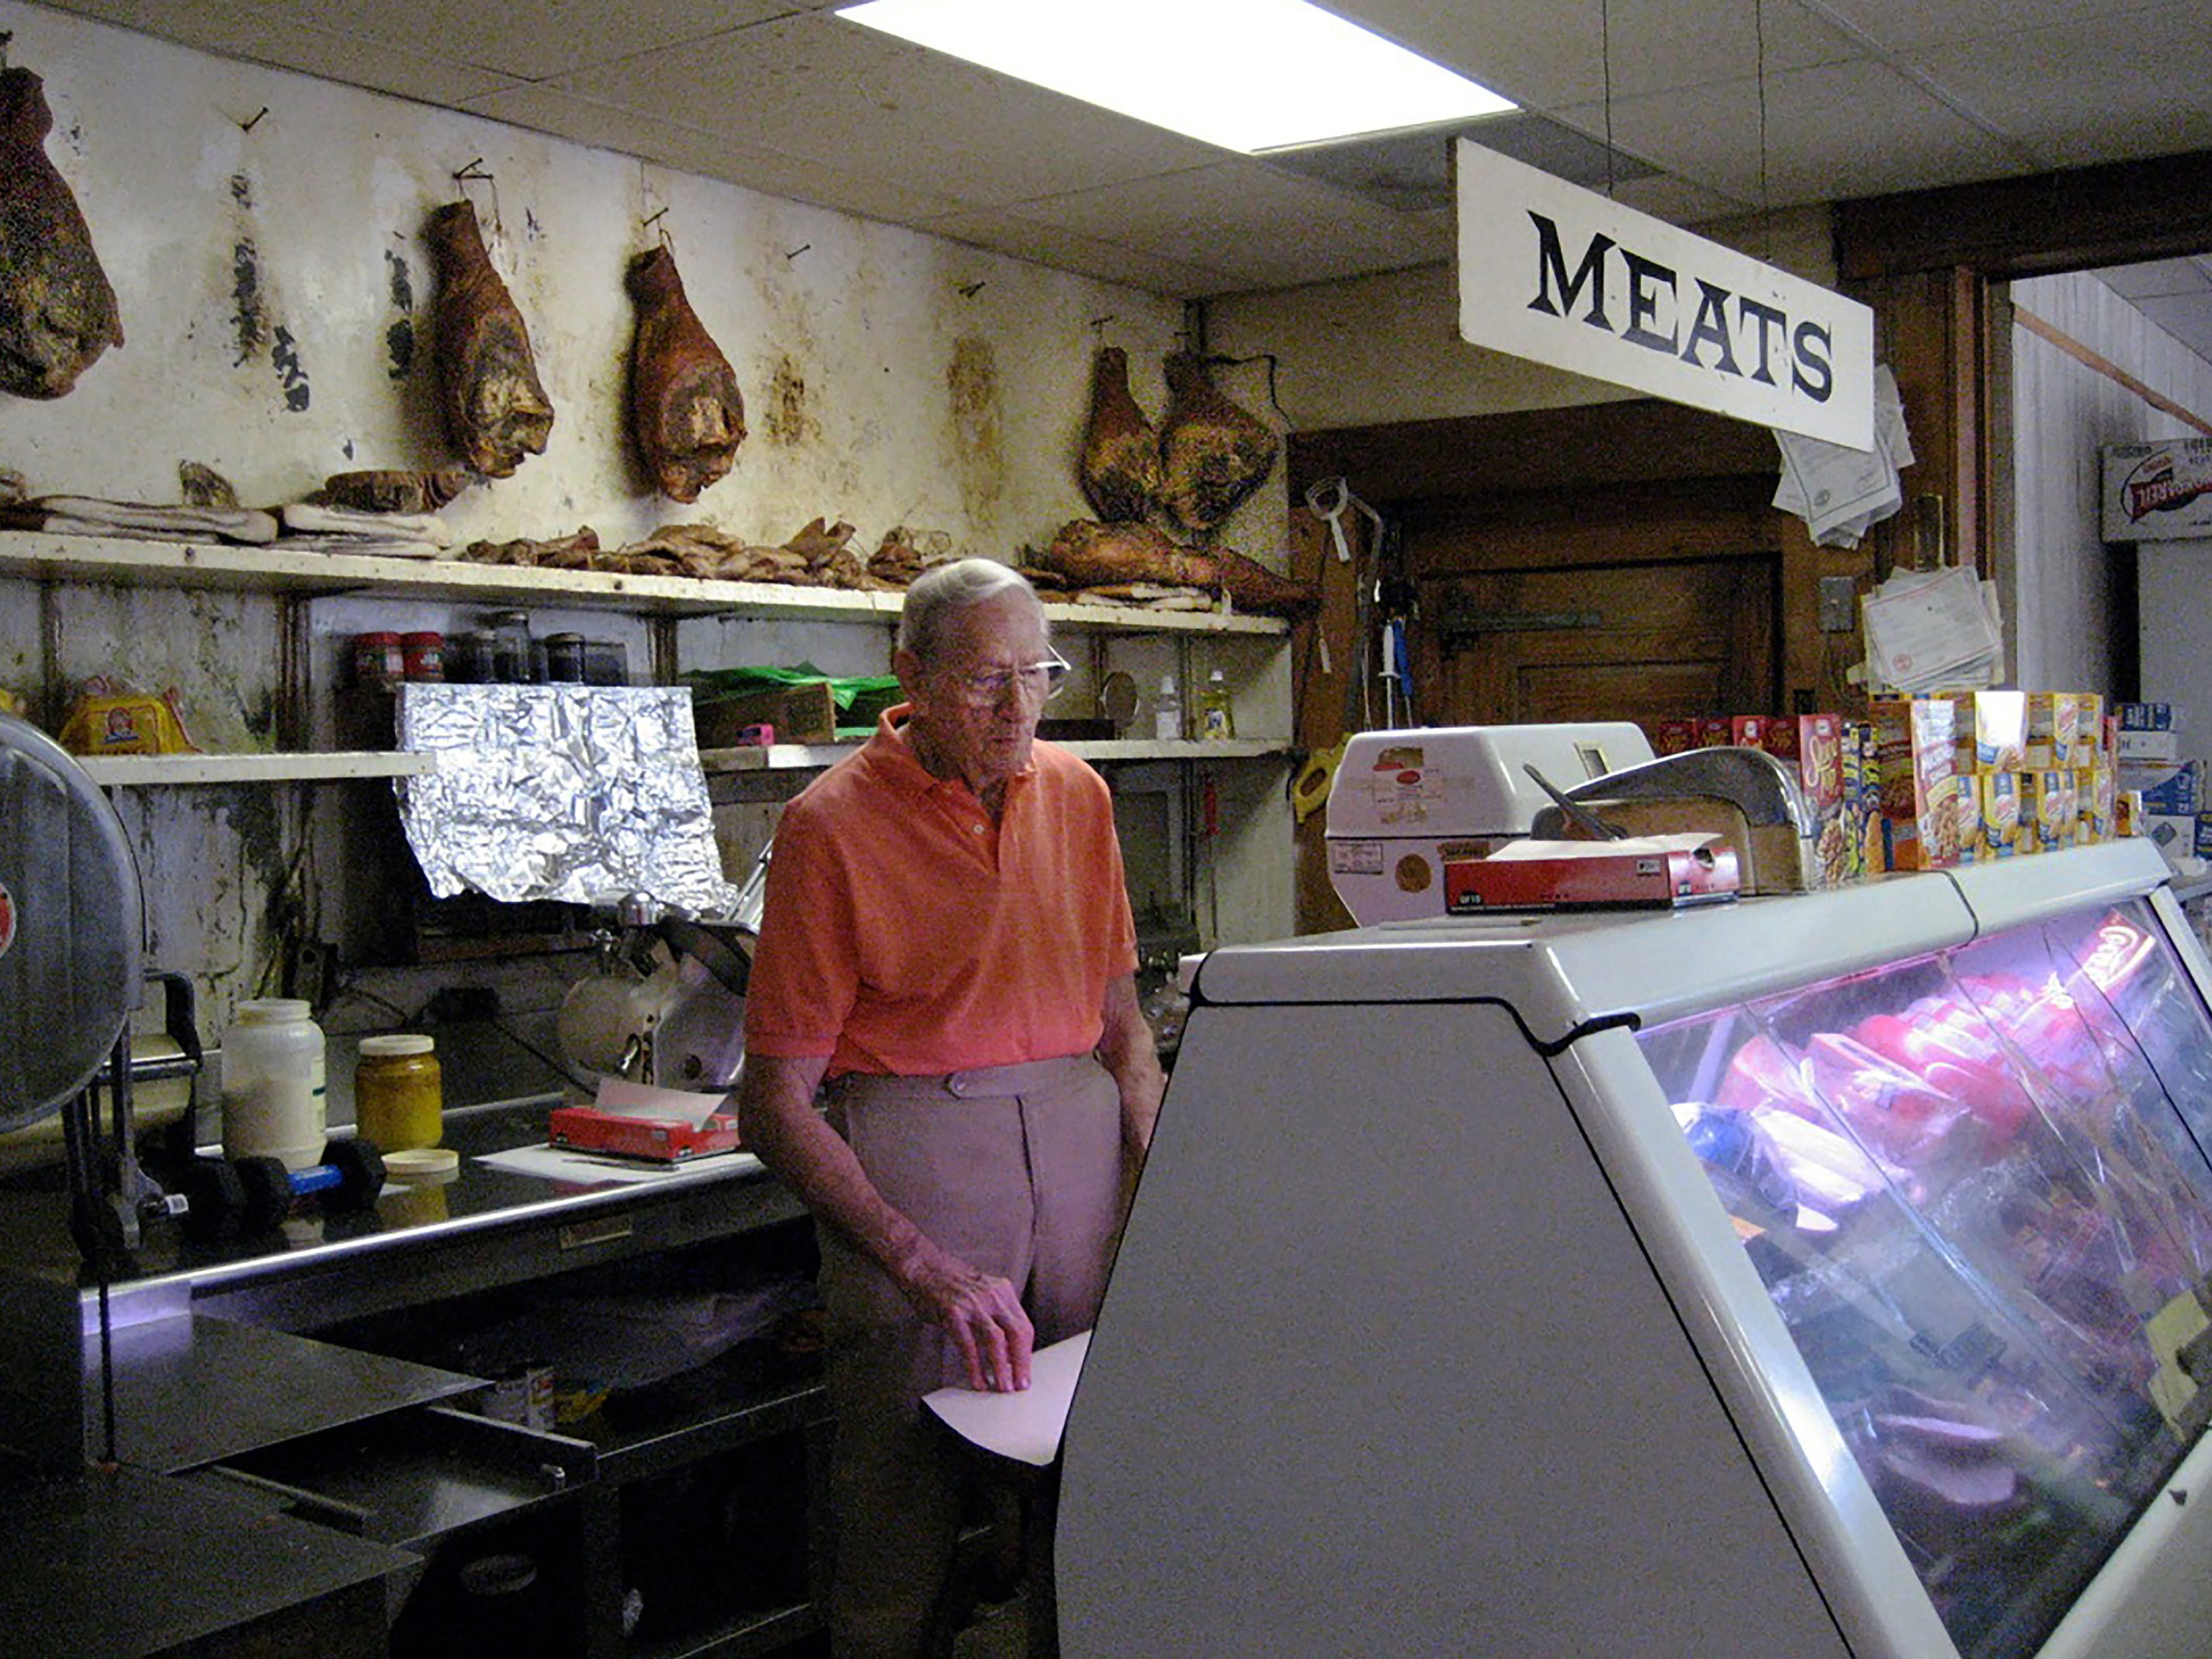 The late Weyman Terry was known for offering top-quality meats and hand-crafted sandwiches at his old-fashioned butcher shop for six decades. Terry died in 2012 at age 87.